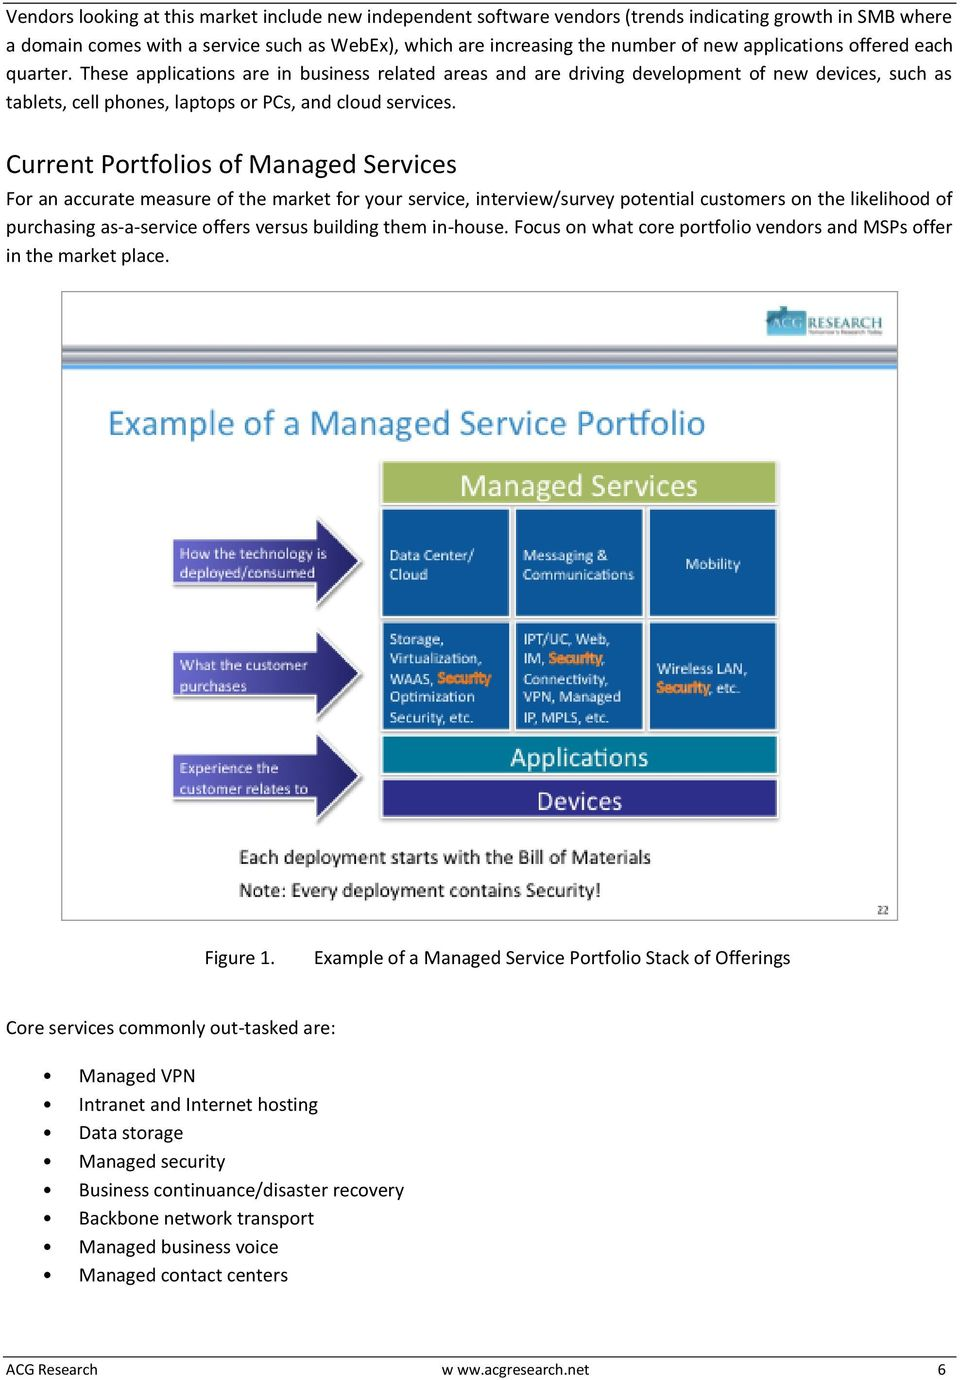 Current Portfolios of Managed Services For an accurate measure of the market for your service, interview/survey potential customers on the likelihood of purchasing as-a-service offers versus building